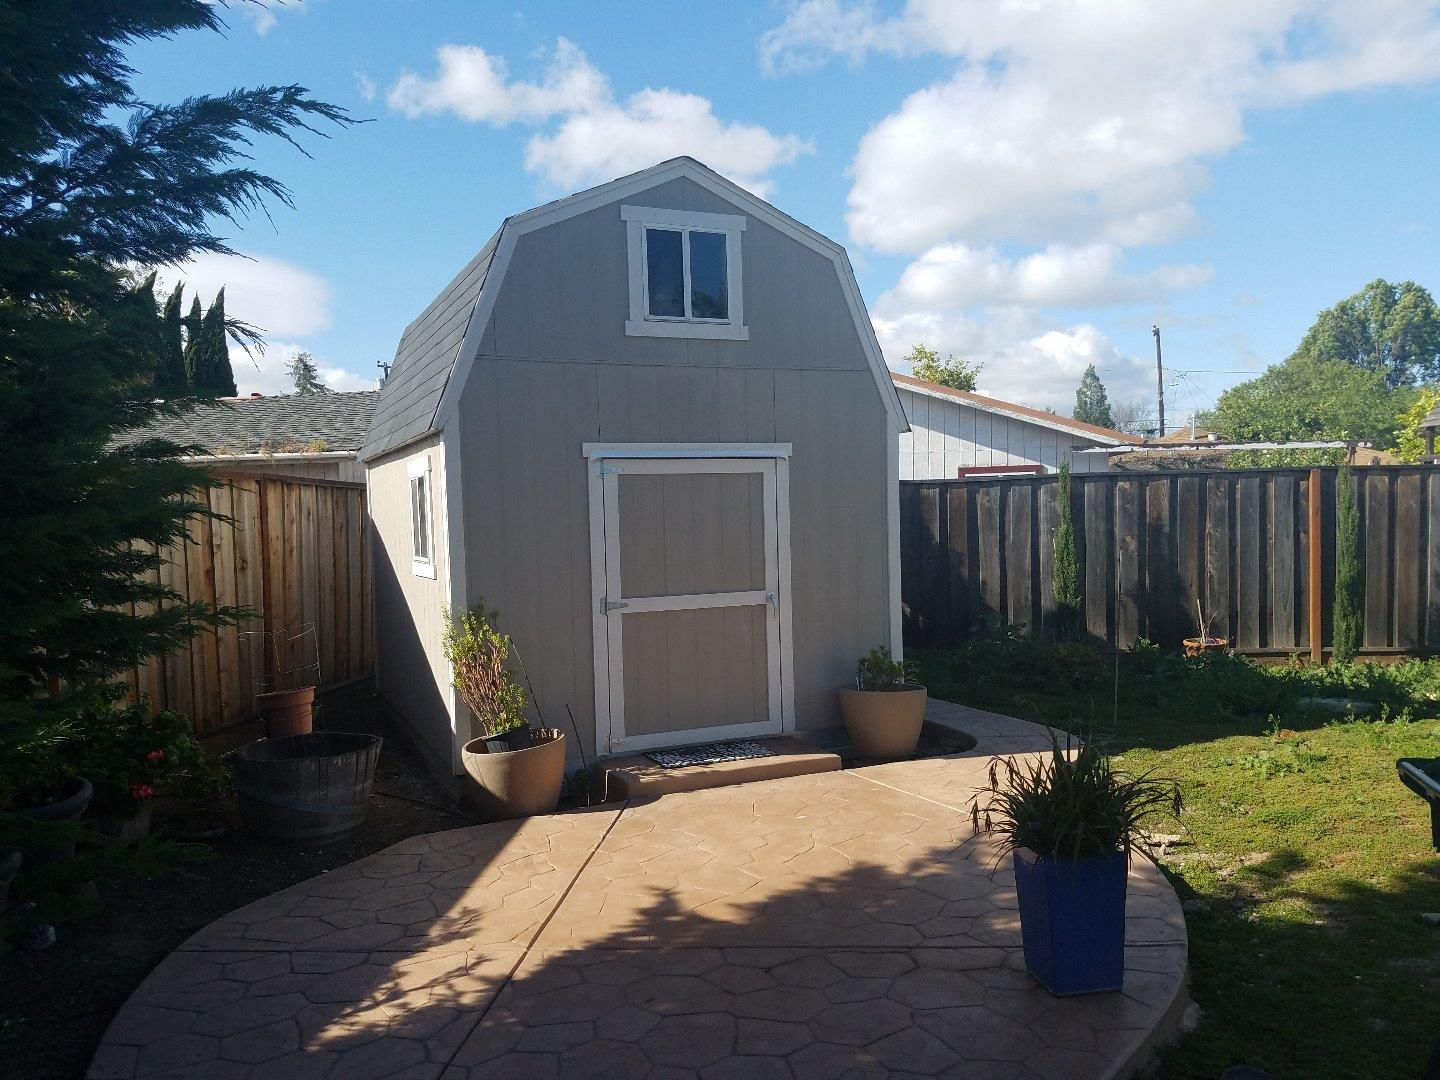 Additional photo for property listing at 3031 Humbolt Avenue  Santa Clara, California 95051 Estados Unidos